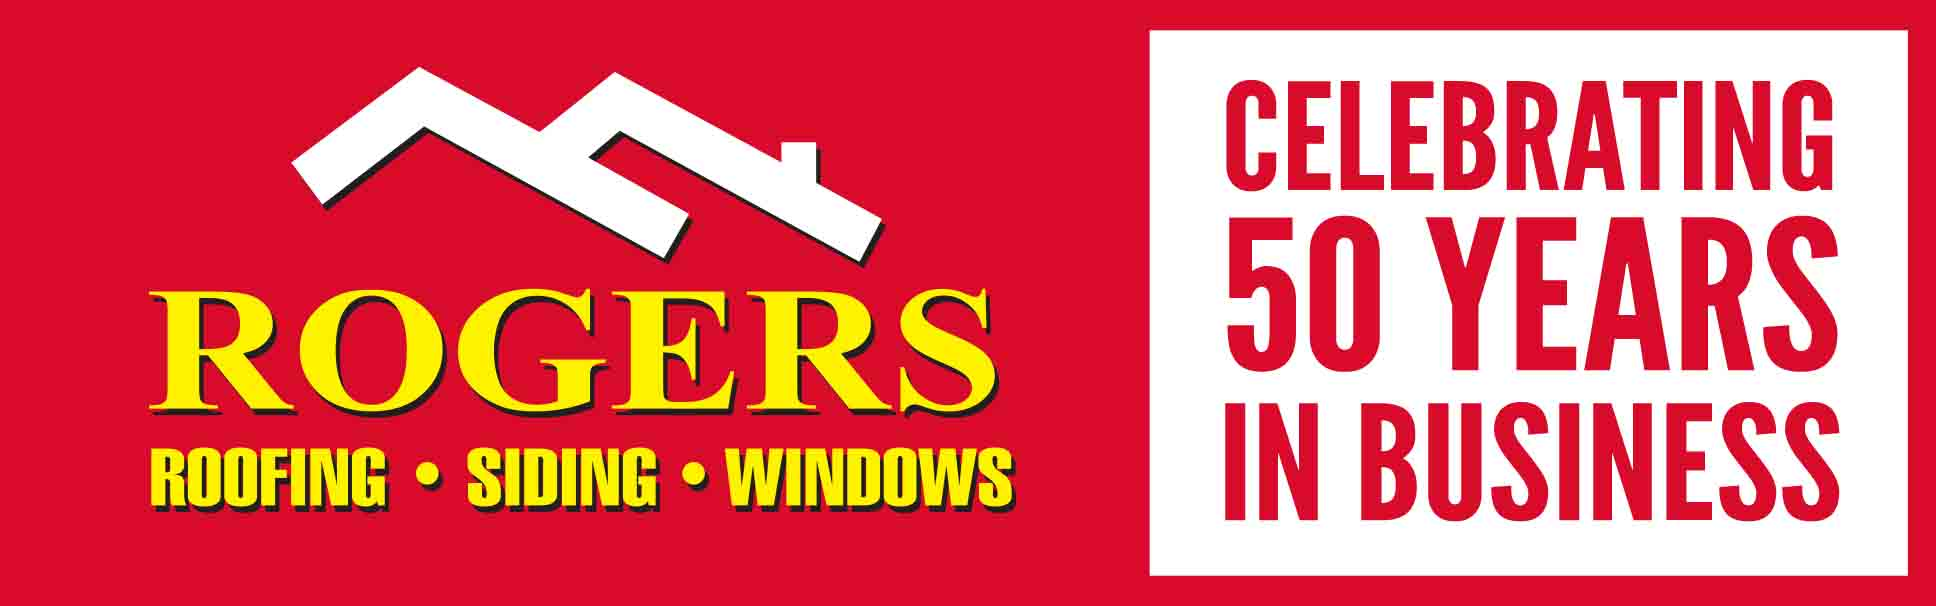 Rogers Roofing: 50 Years in Business